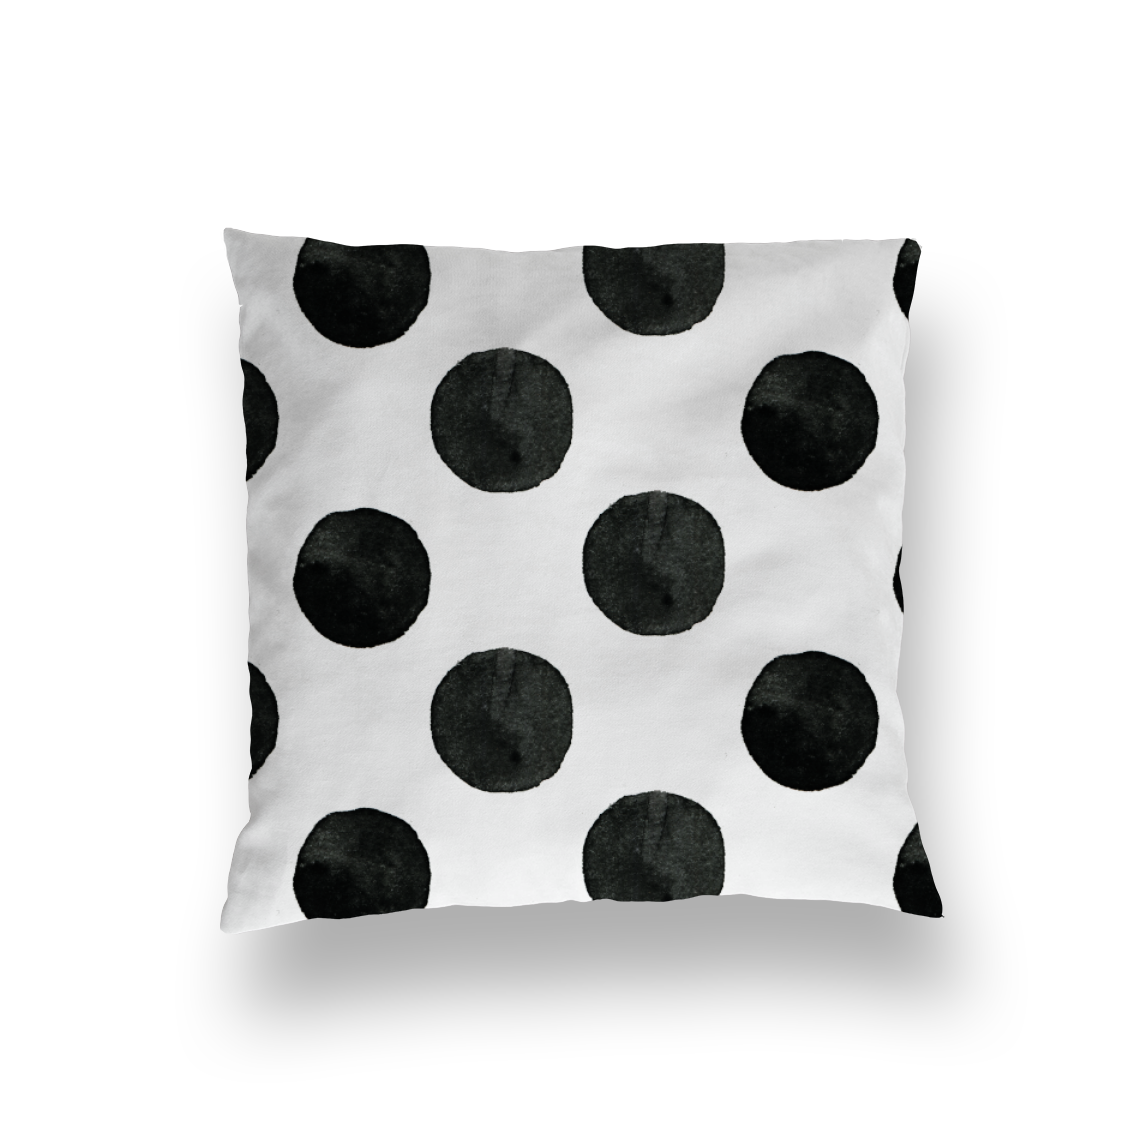 surface pattern design dots black and white blackandwhite design homedecor heimtextilien kissen decken bettwäsche punkte lenayokota lena yokota illustration